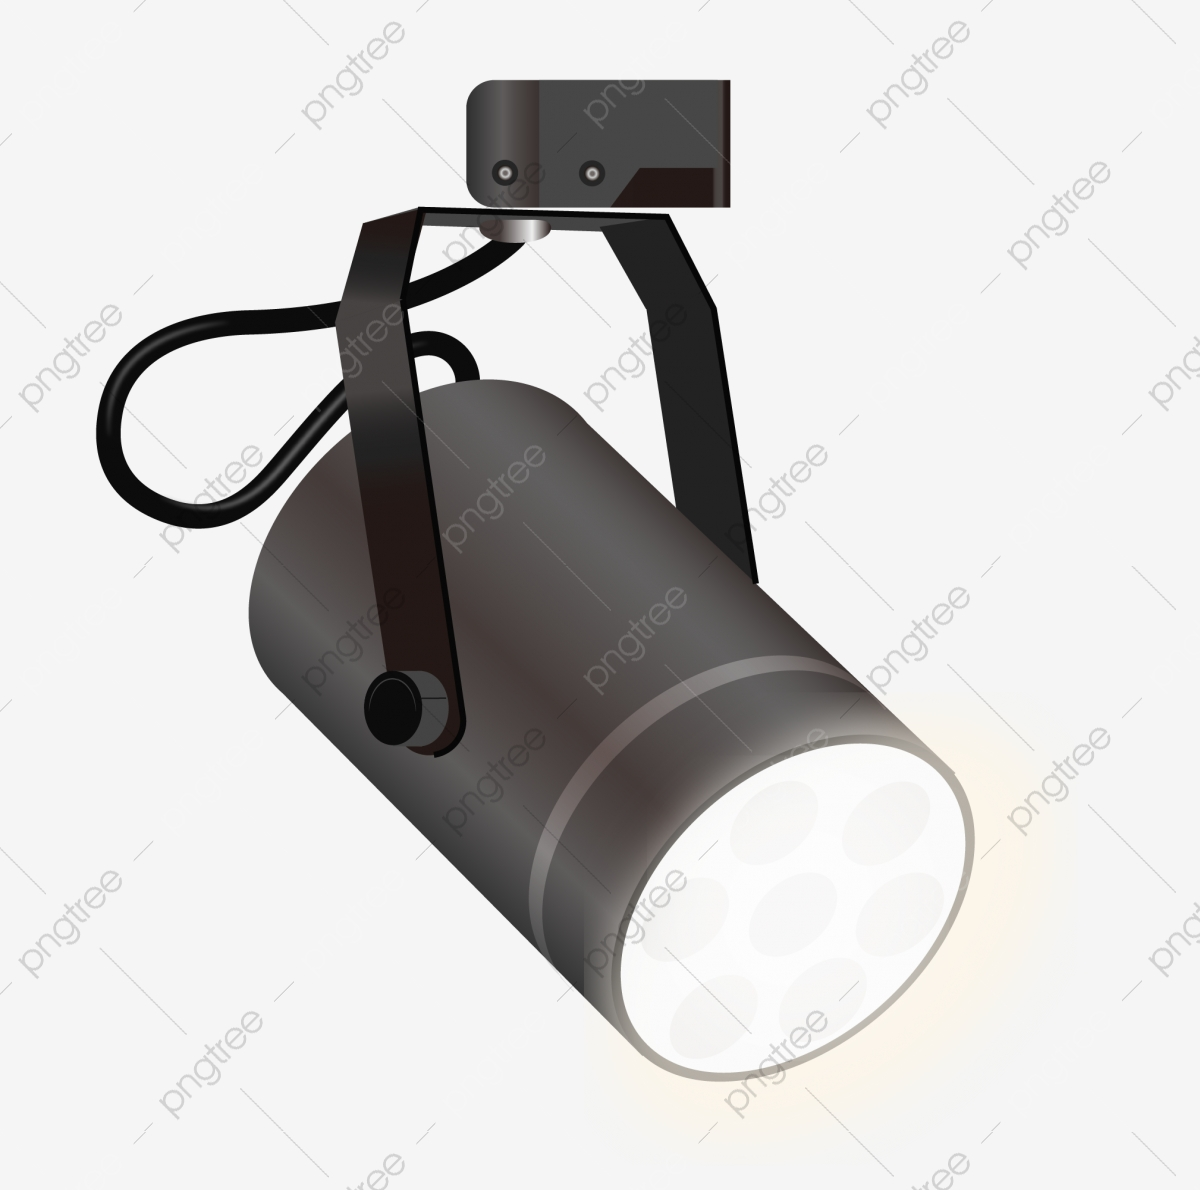 ilustrasi lampu sorot putih menyoroti pencahayaan bohlam cahaya png dan vektor dengan latar belakang transparan untuk unduh gratis https id pngtree com freepng spotlight white light illustration 5459432 html